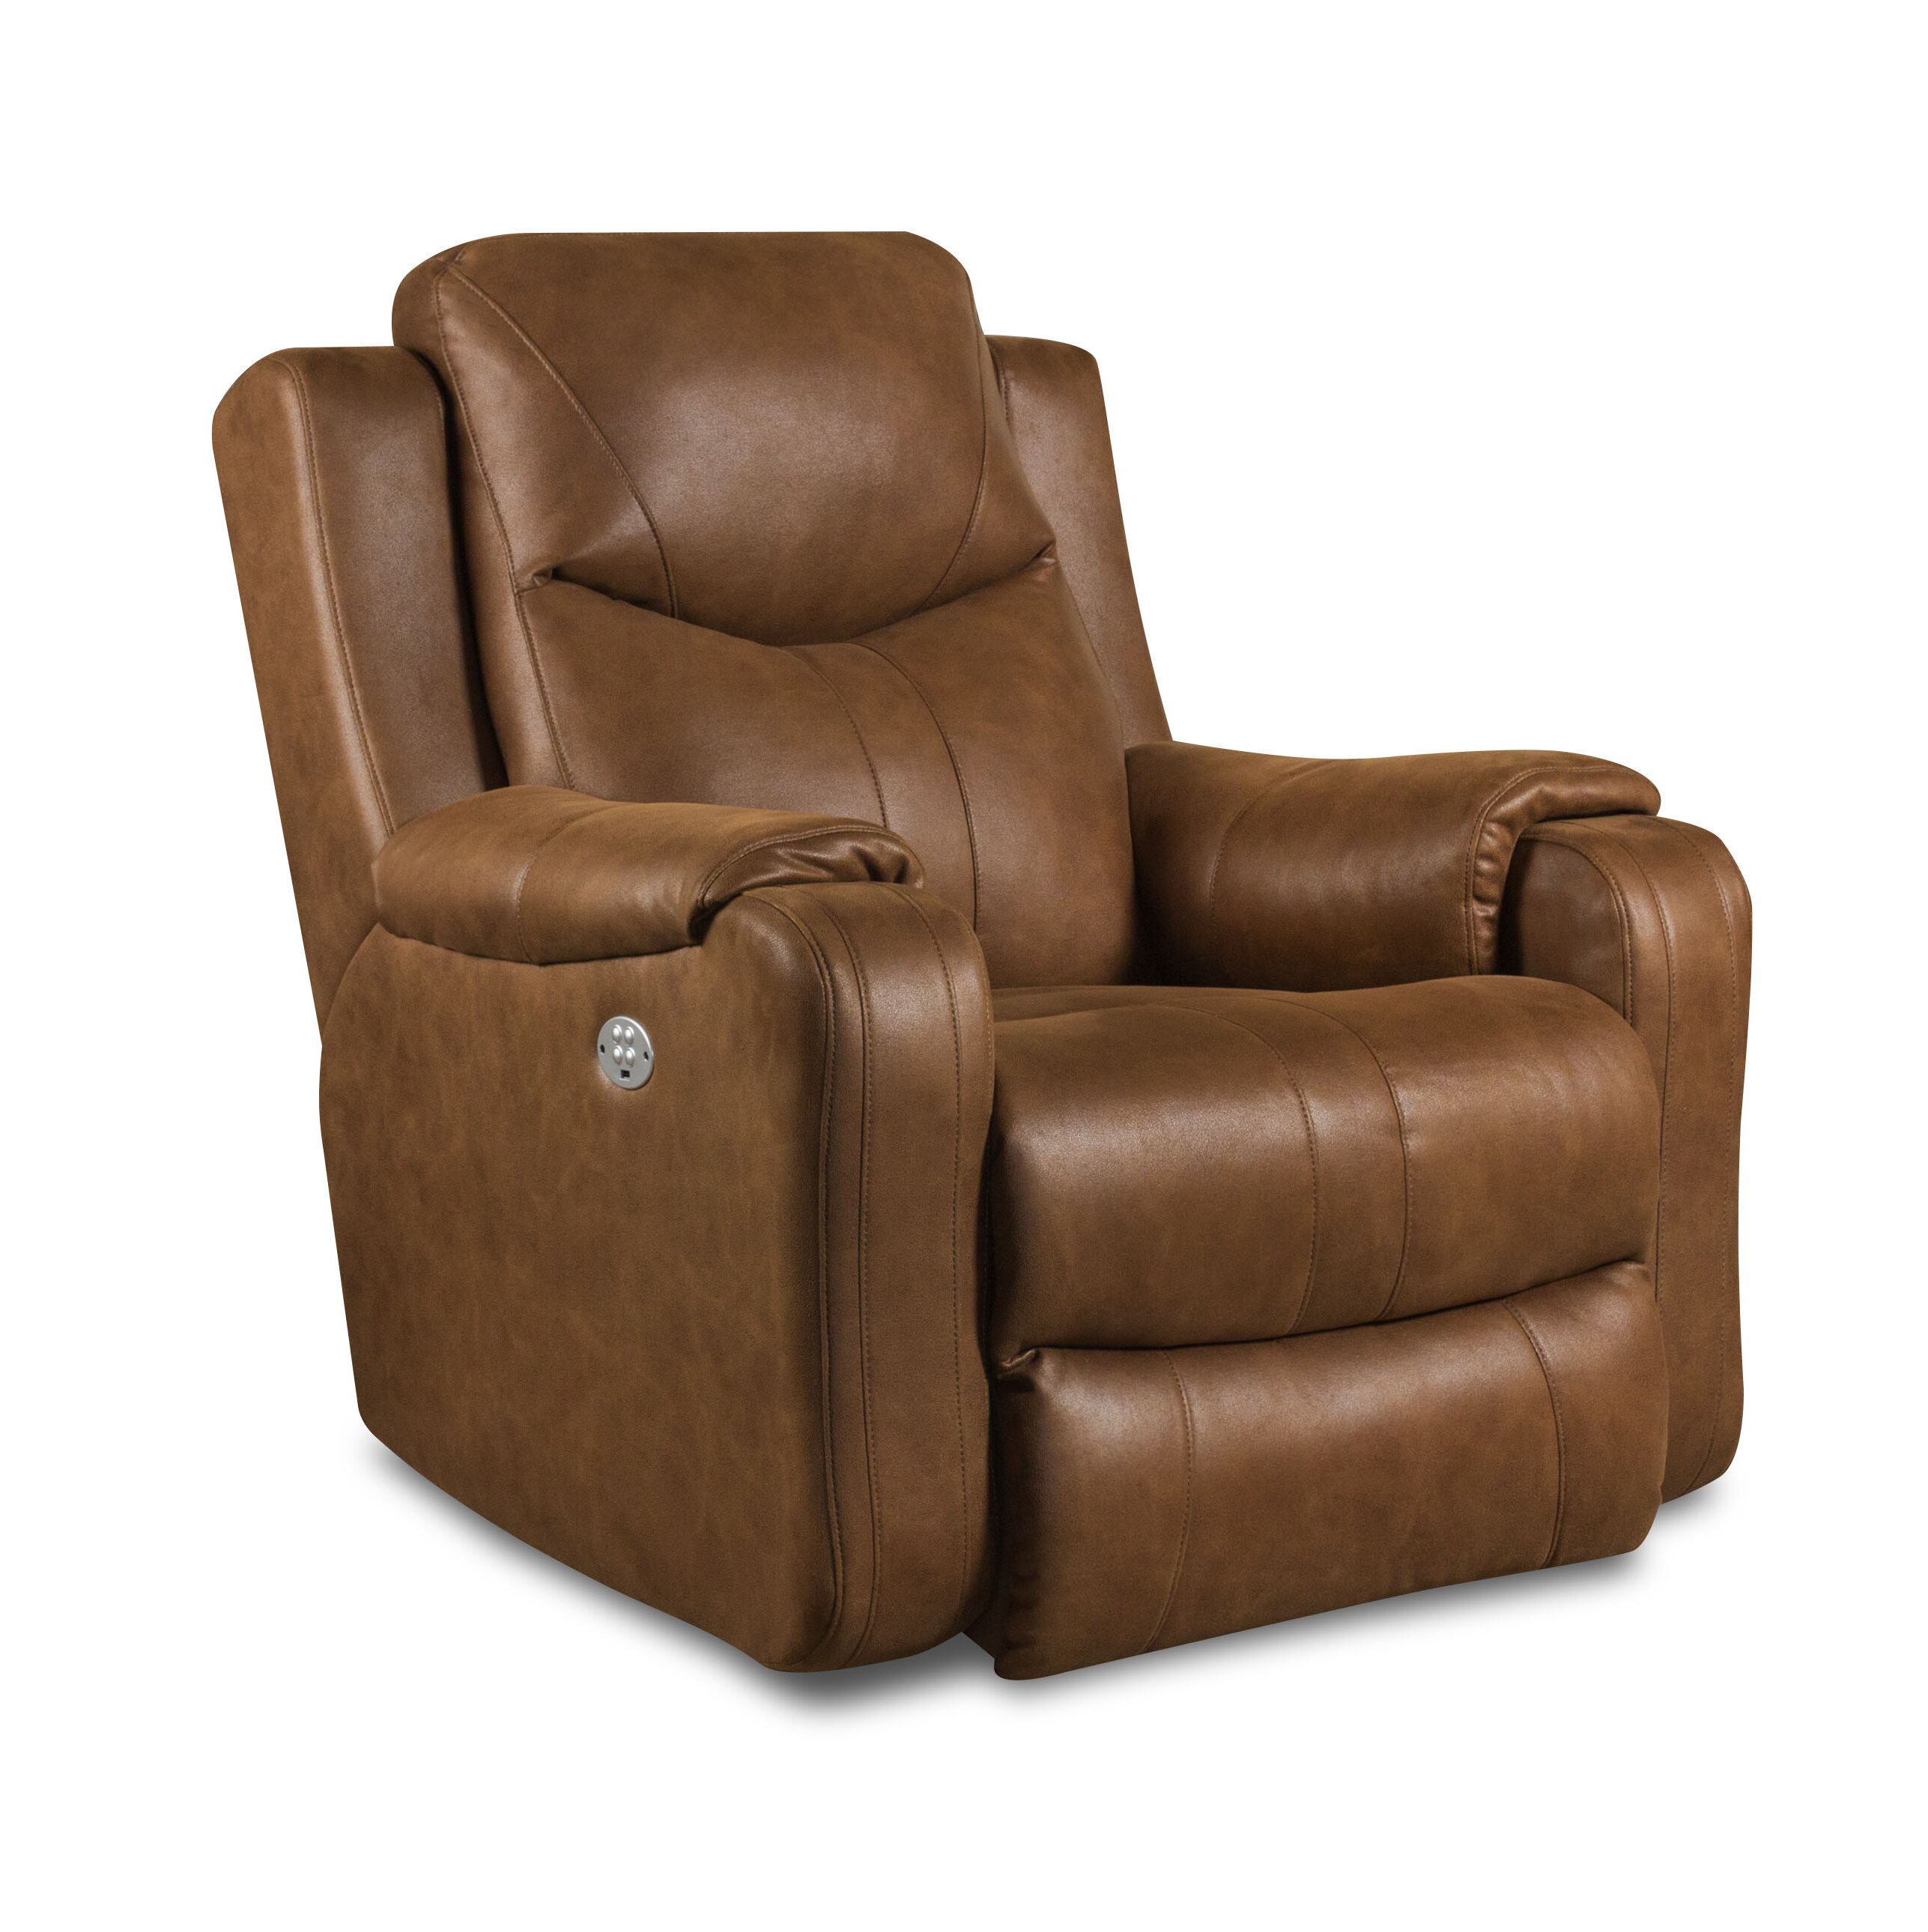 Southern Motion Marvel Rocker Recliner Wayfair